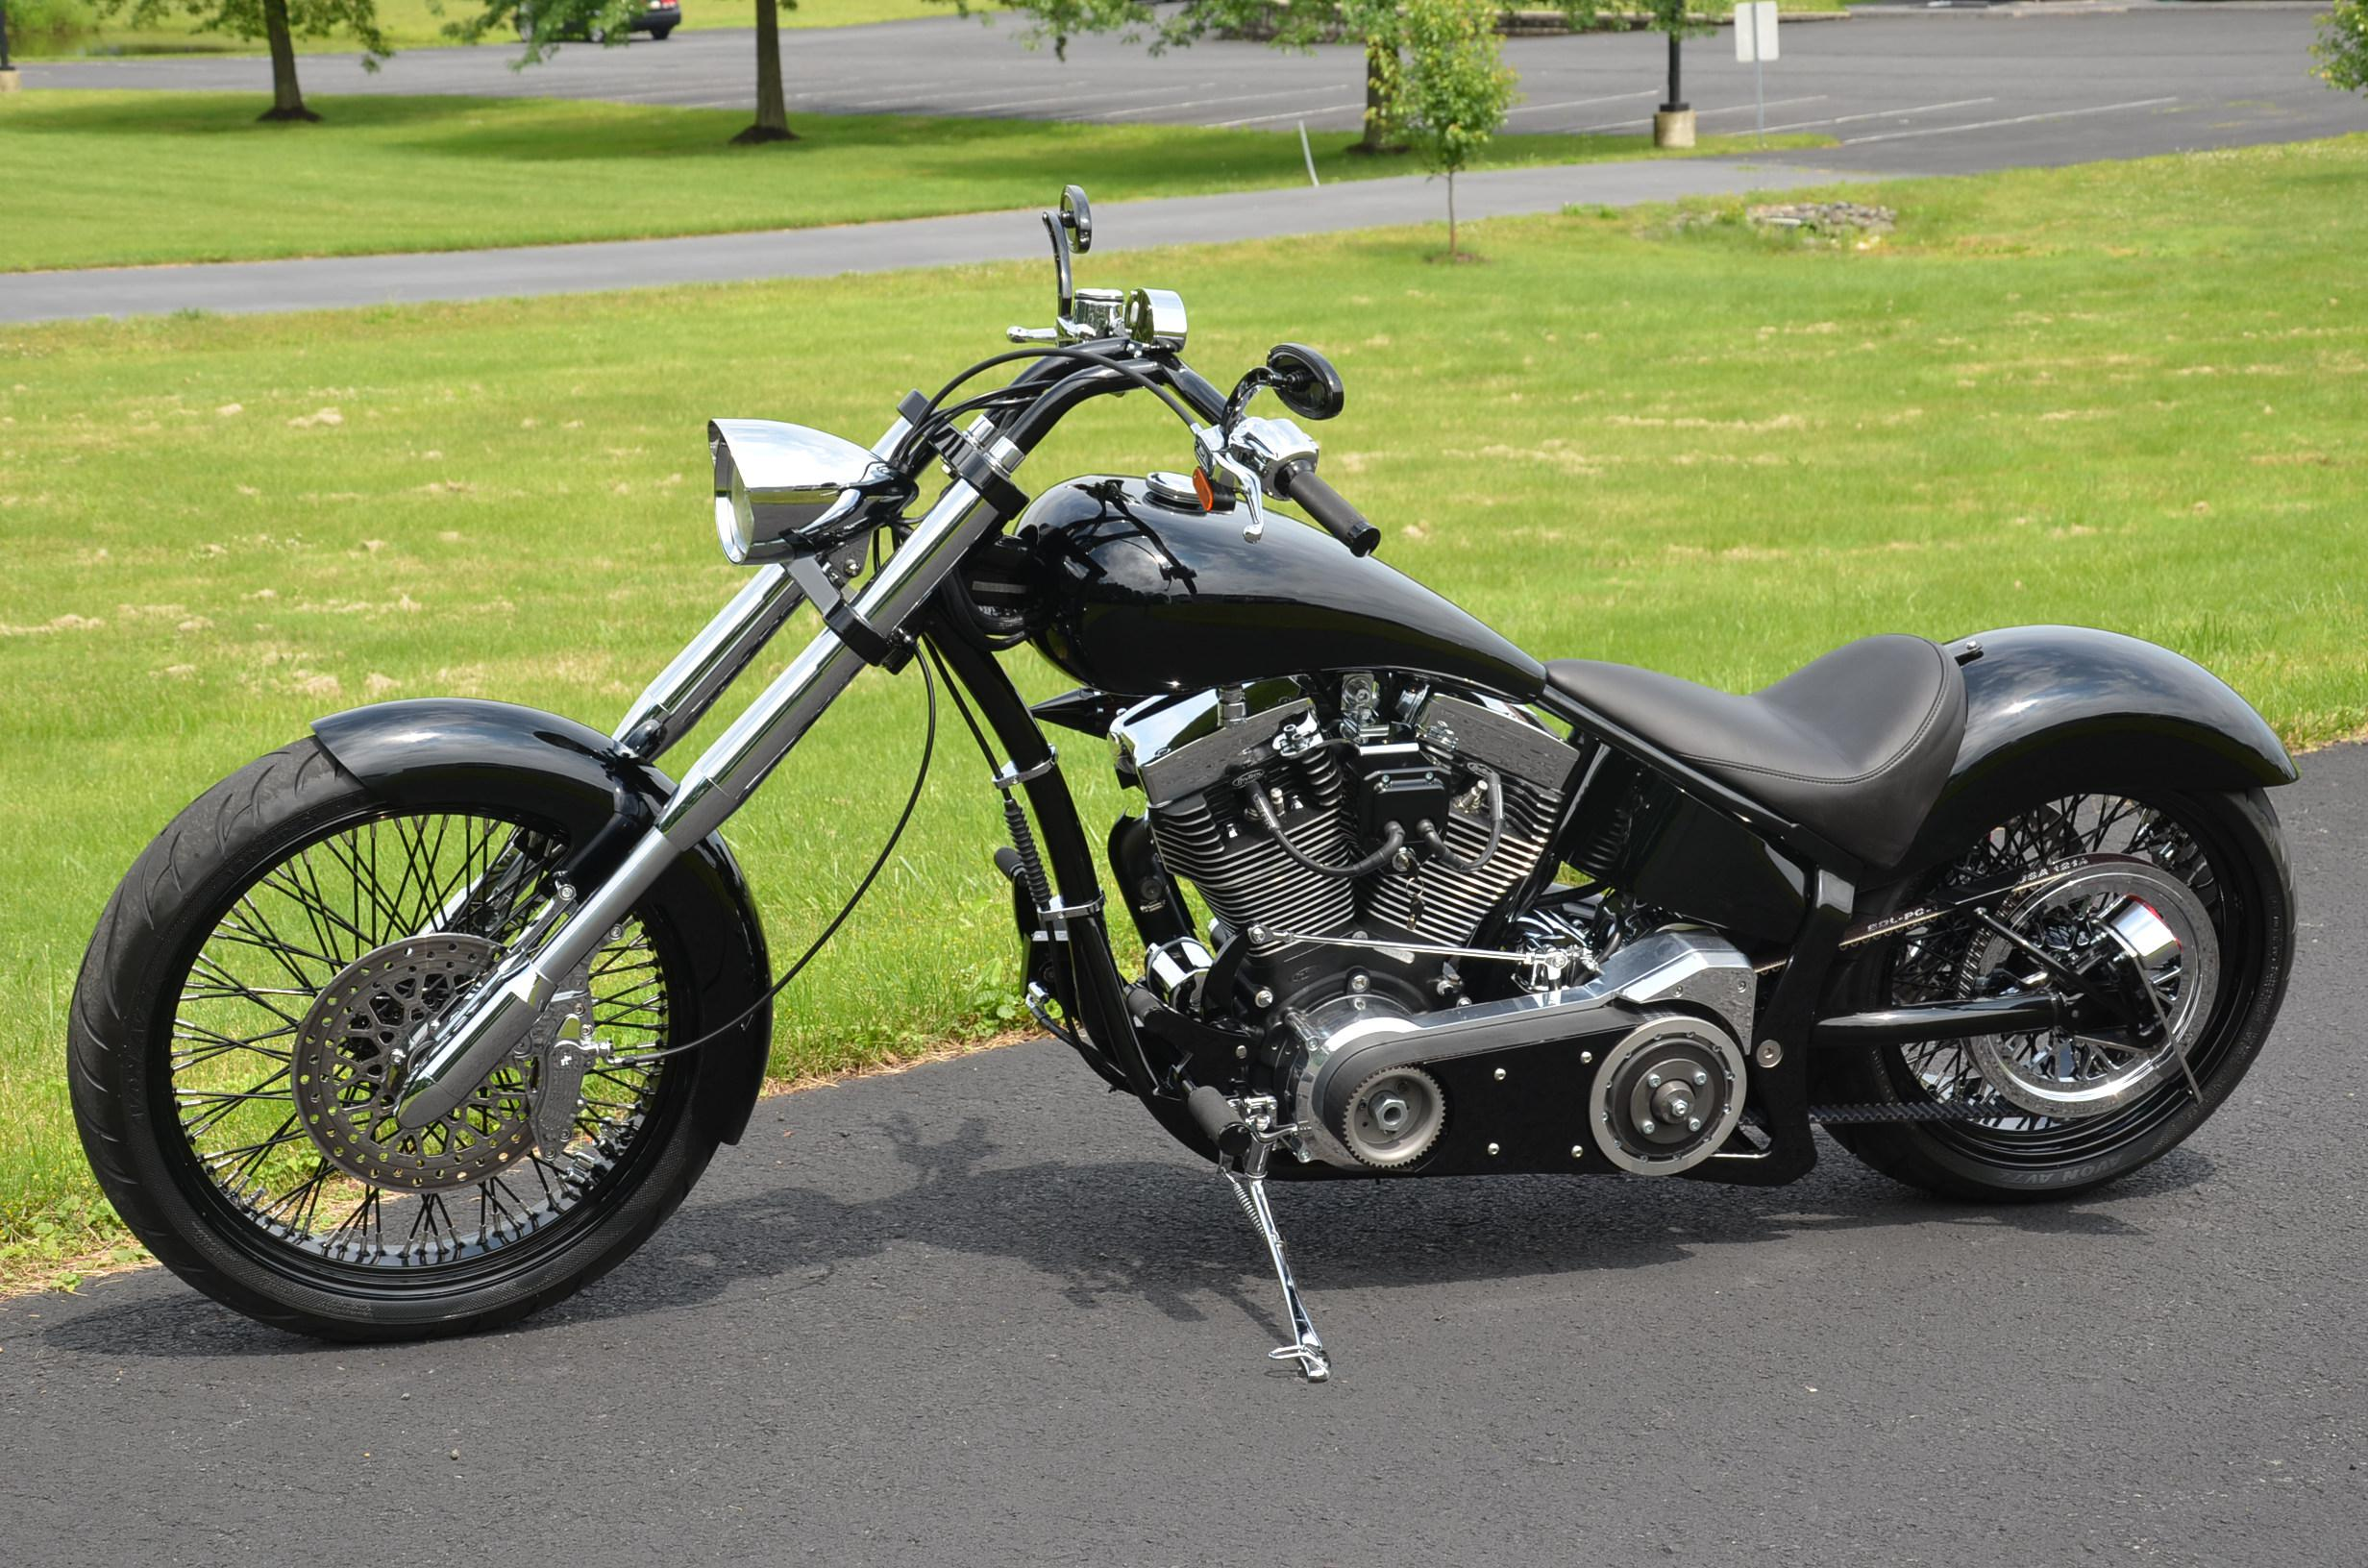 CUSTOM CHOPPER motorbike tuning bike hot rod rods  w